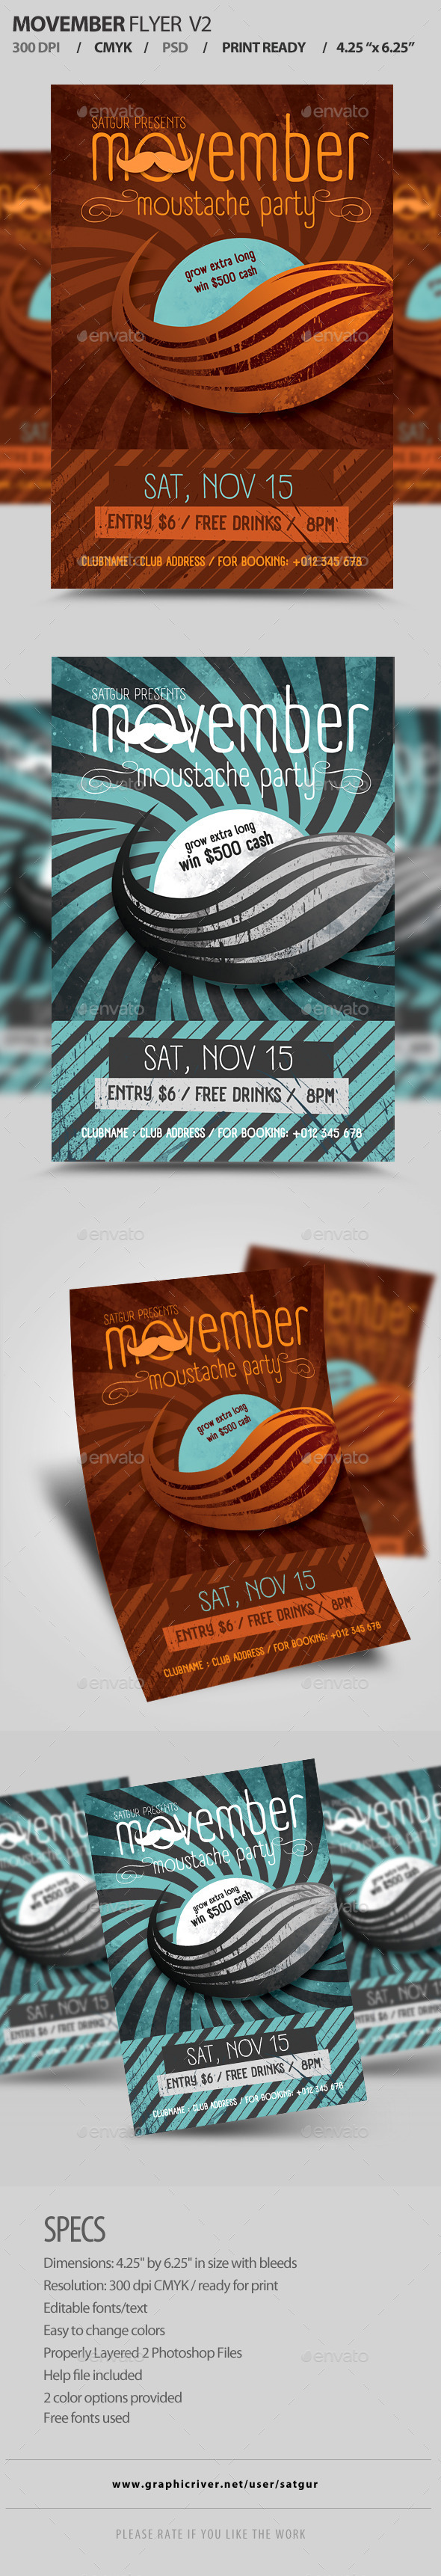 Movember Flyer / Moustache Party Flyer V2  - Clubs & Parties Events